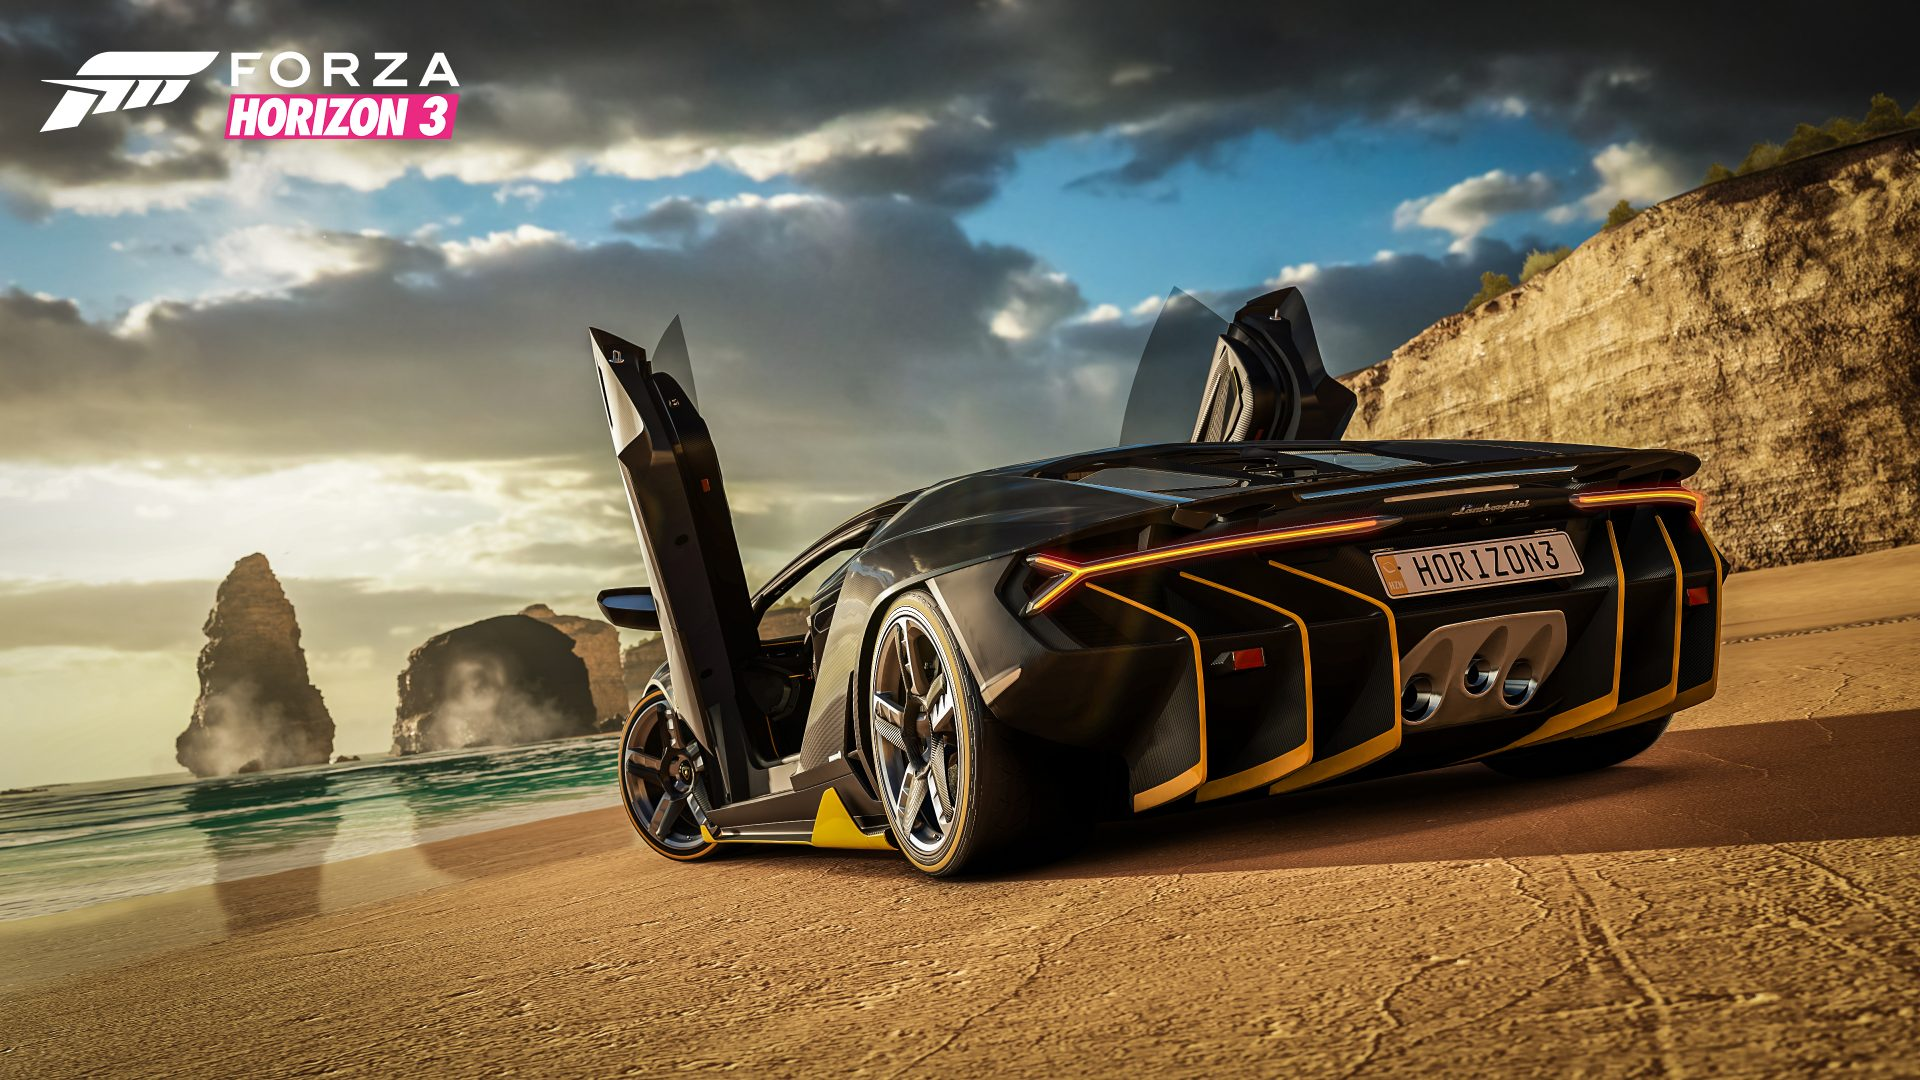 E3 2016 Hands On – Forza Horizon 3